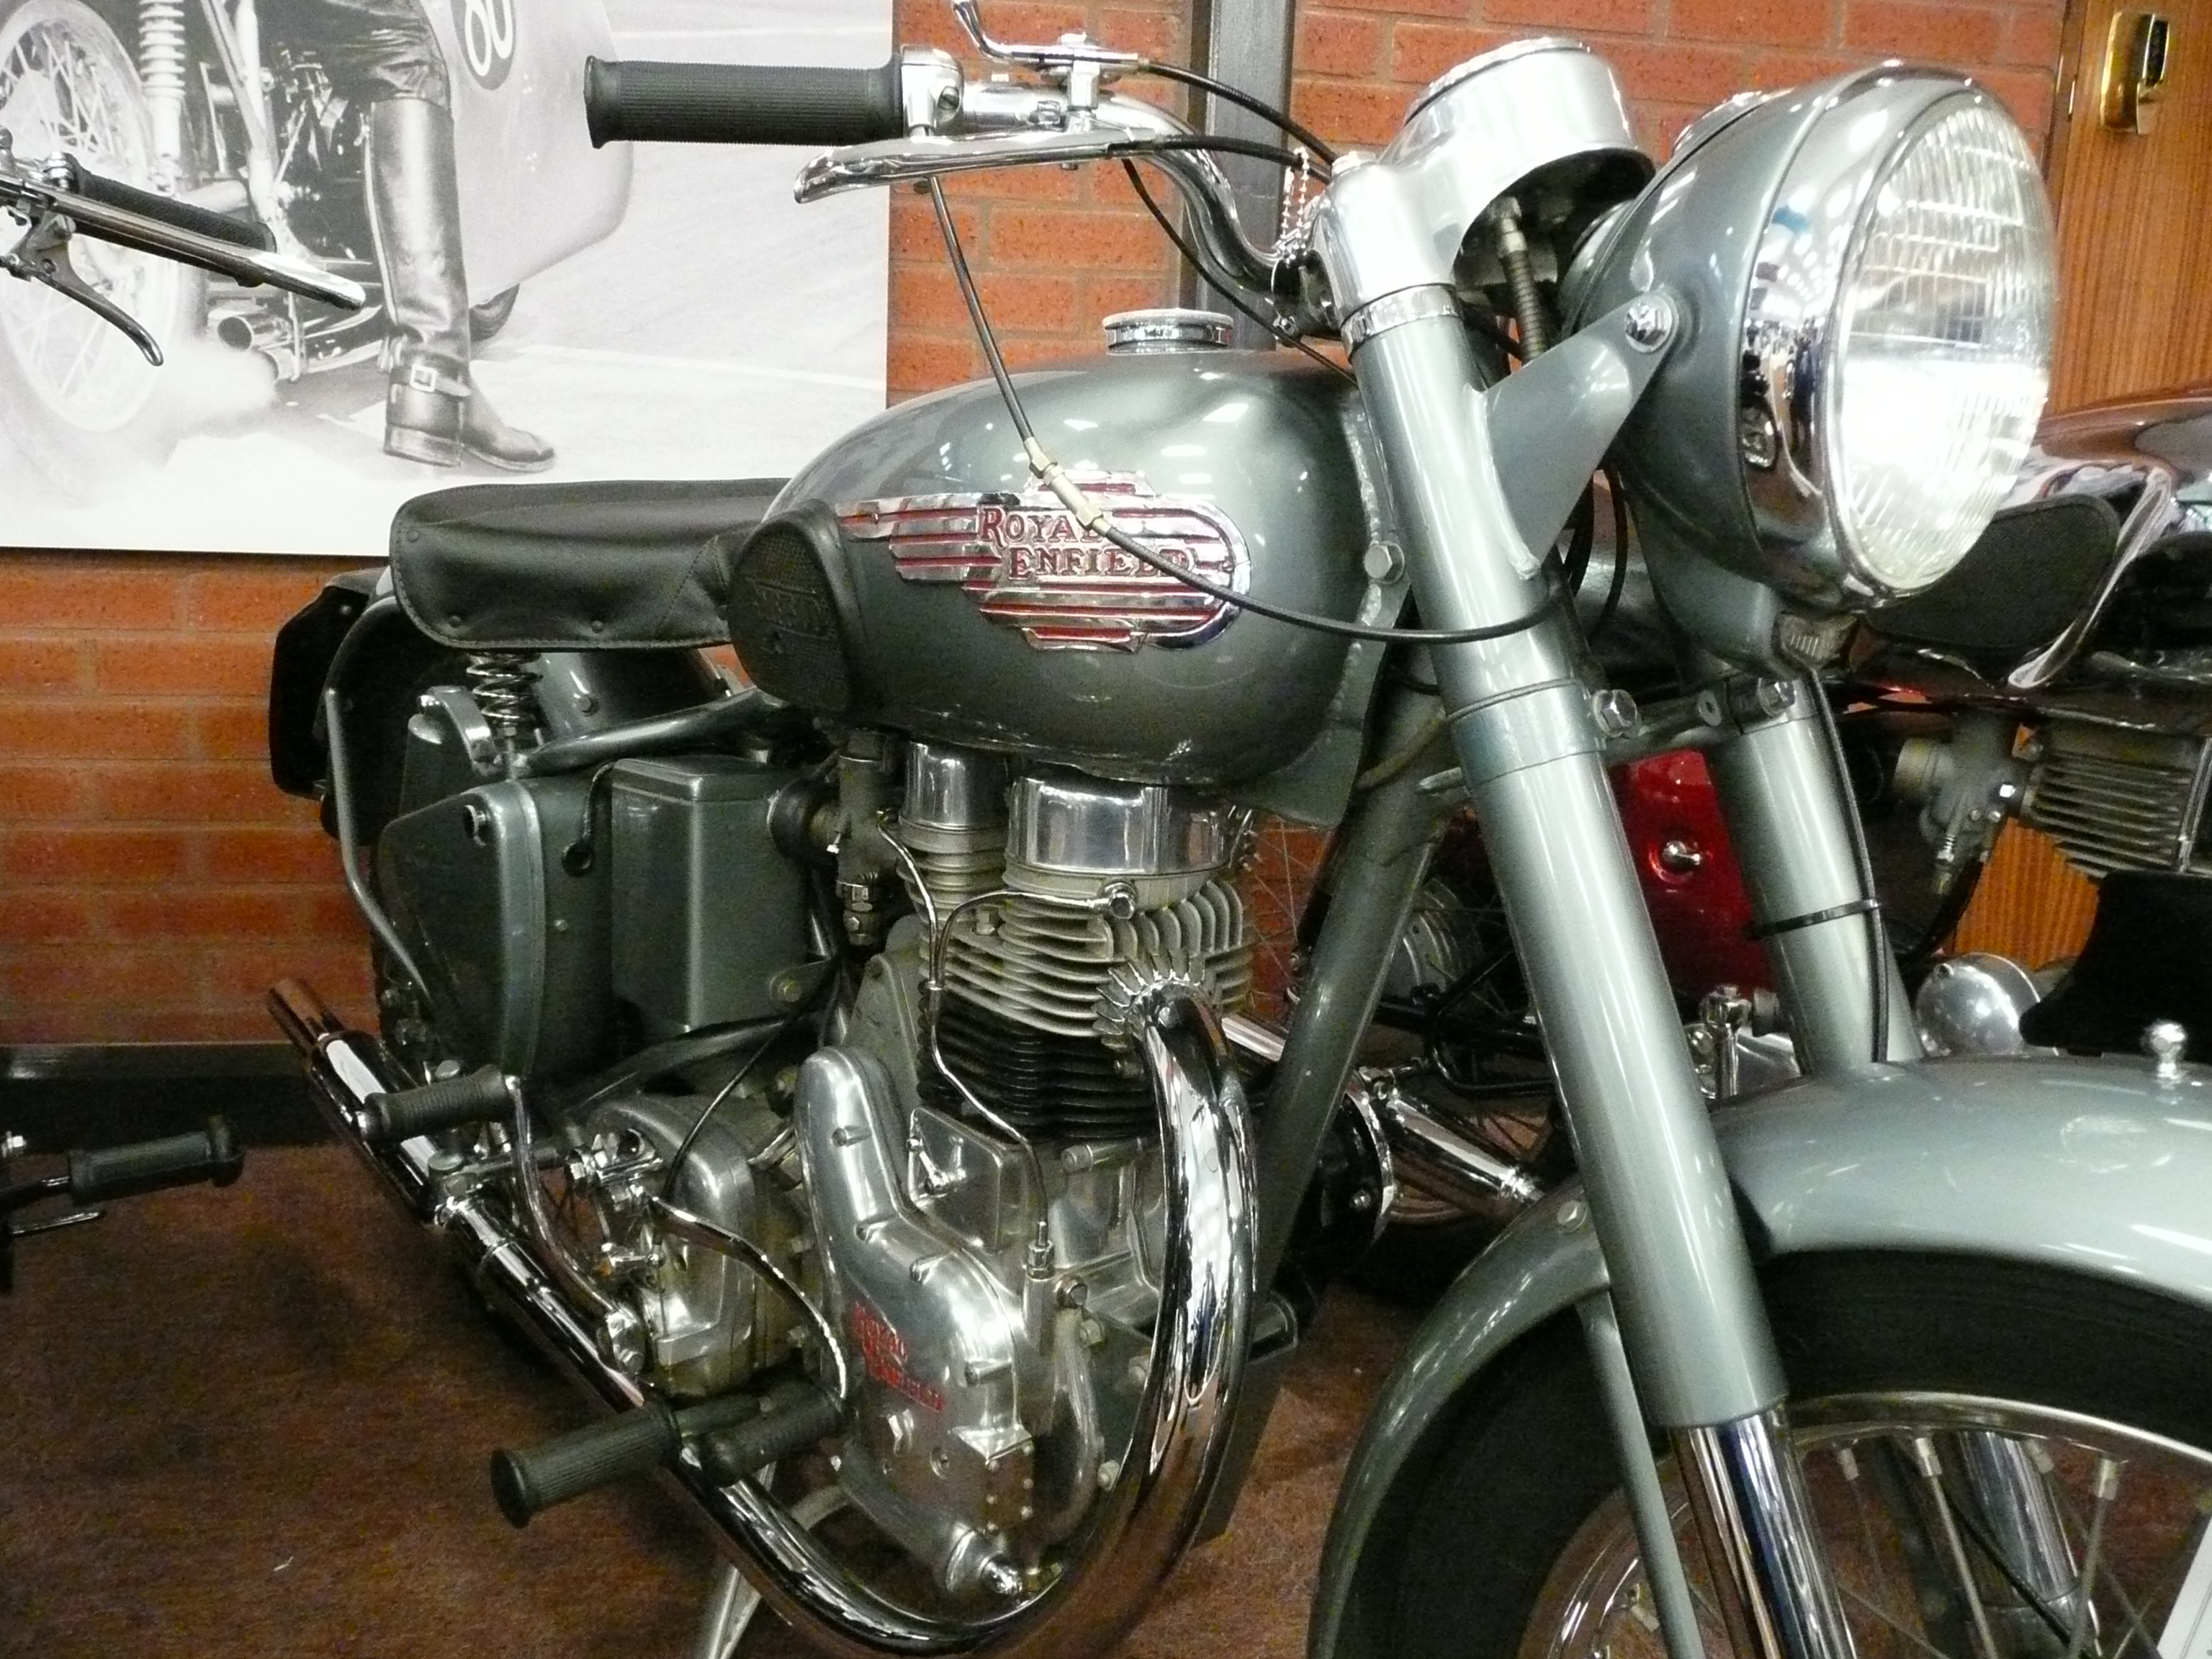 Royal Enfield Bullet 350 Army 2004 images #126532